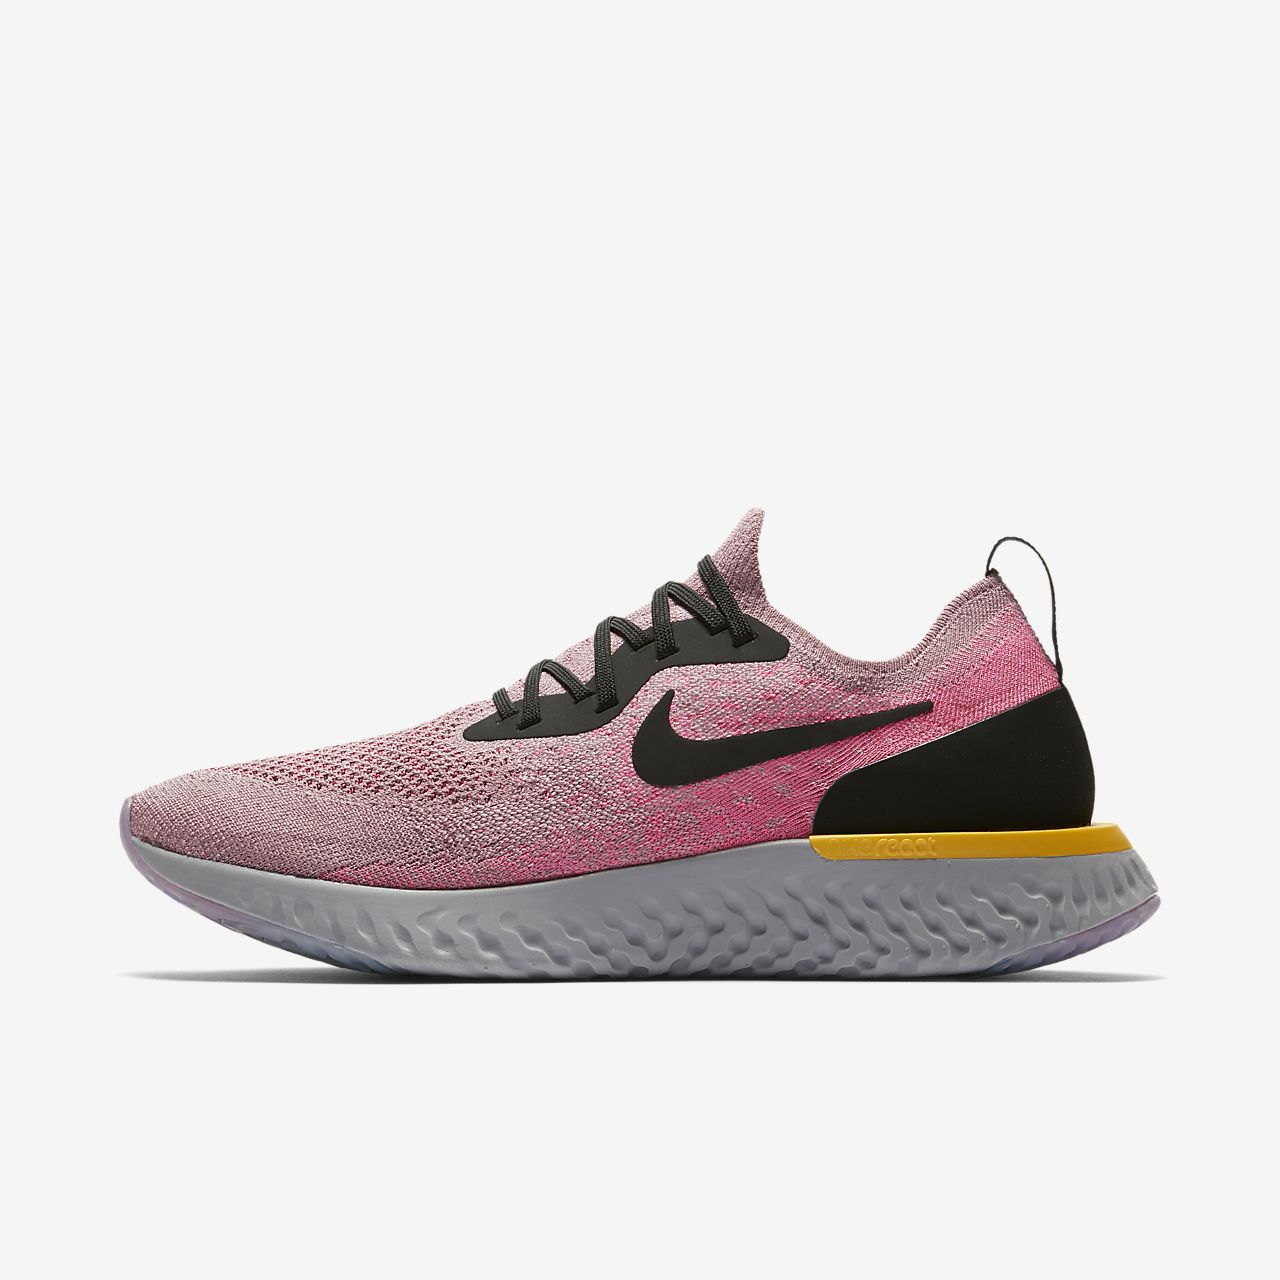 6fa1d5cb46cd Nike Epic React Flyknit 1 Men s Running Shoe. Nike.com